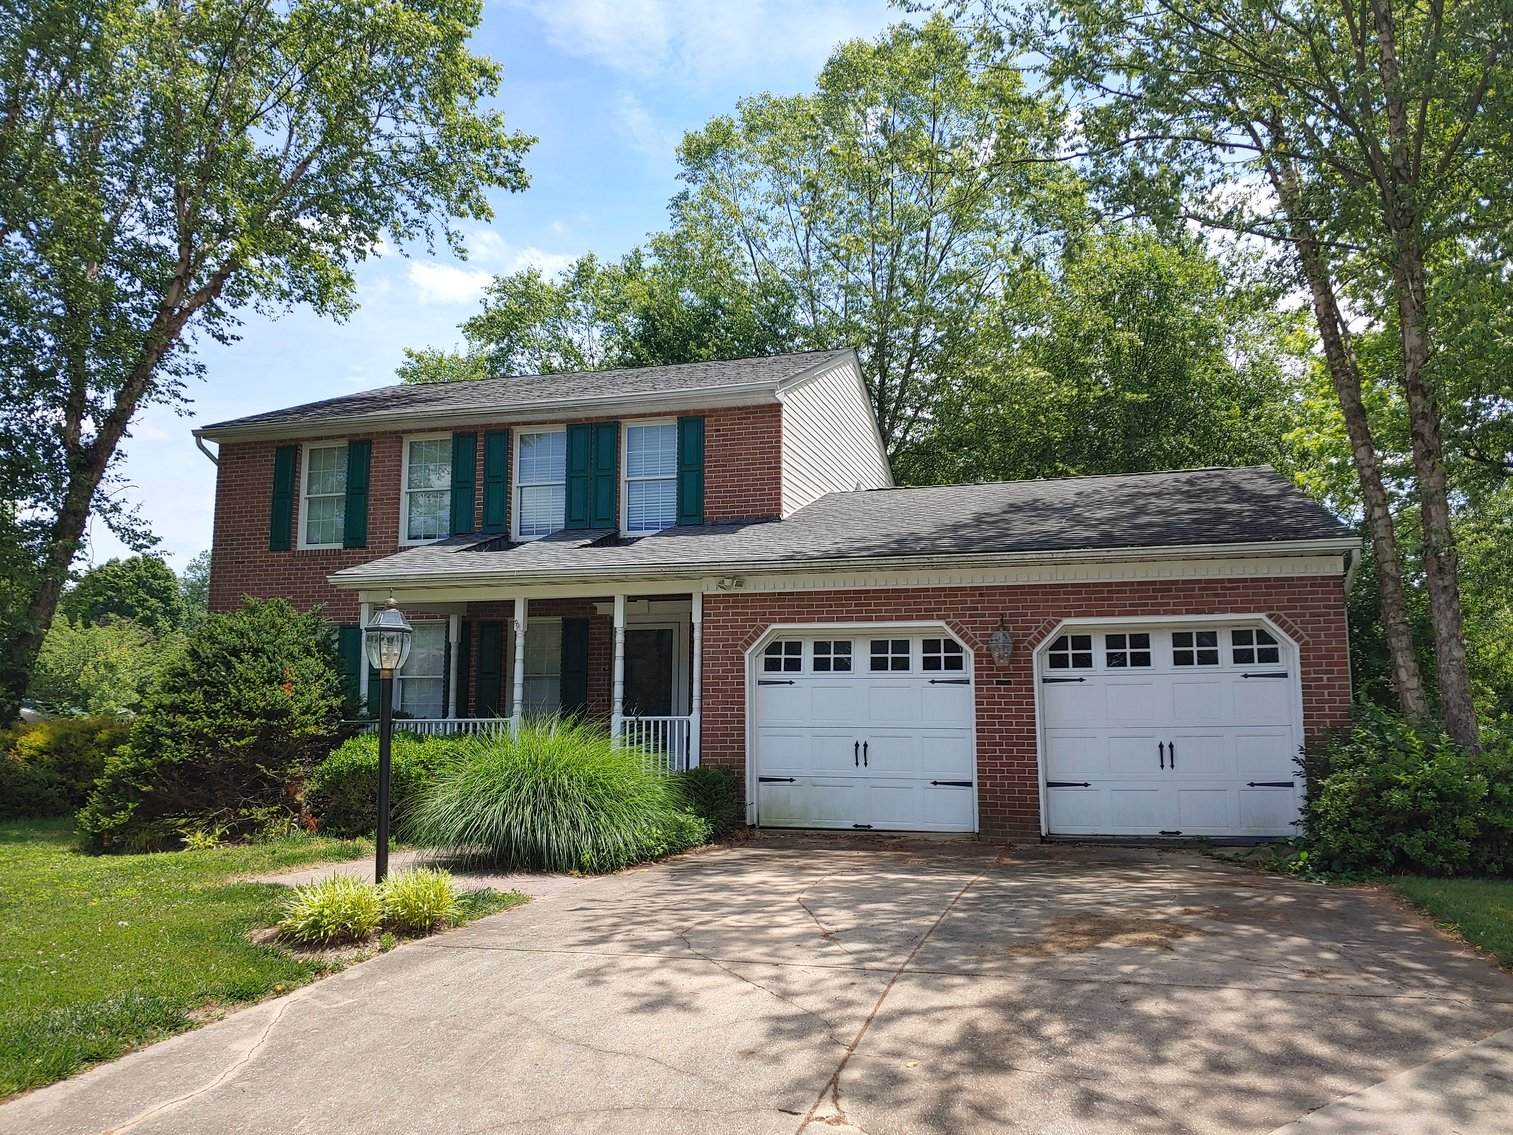 3 BEDROOM, 2½ BATH, 2 STORY BRICK FRONT HOME W/ REMAINING PERSONAL PROPERTY